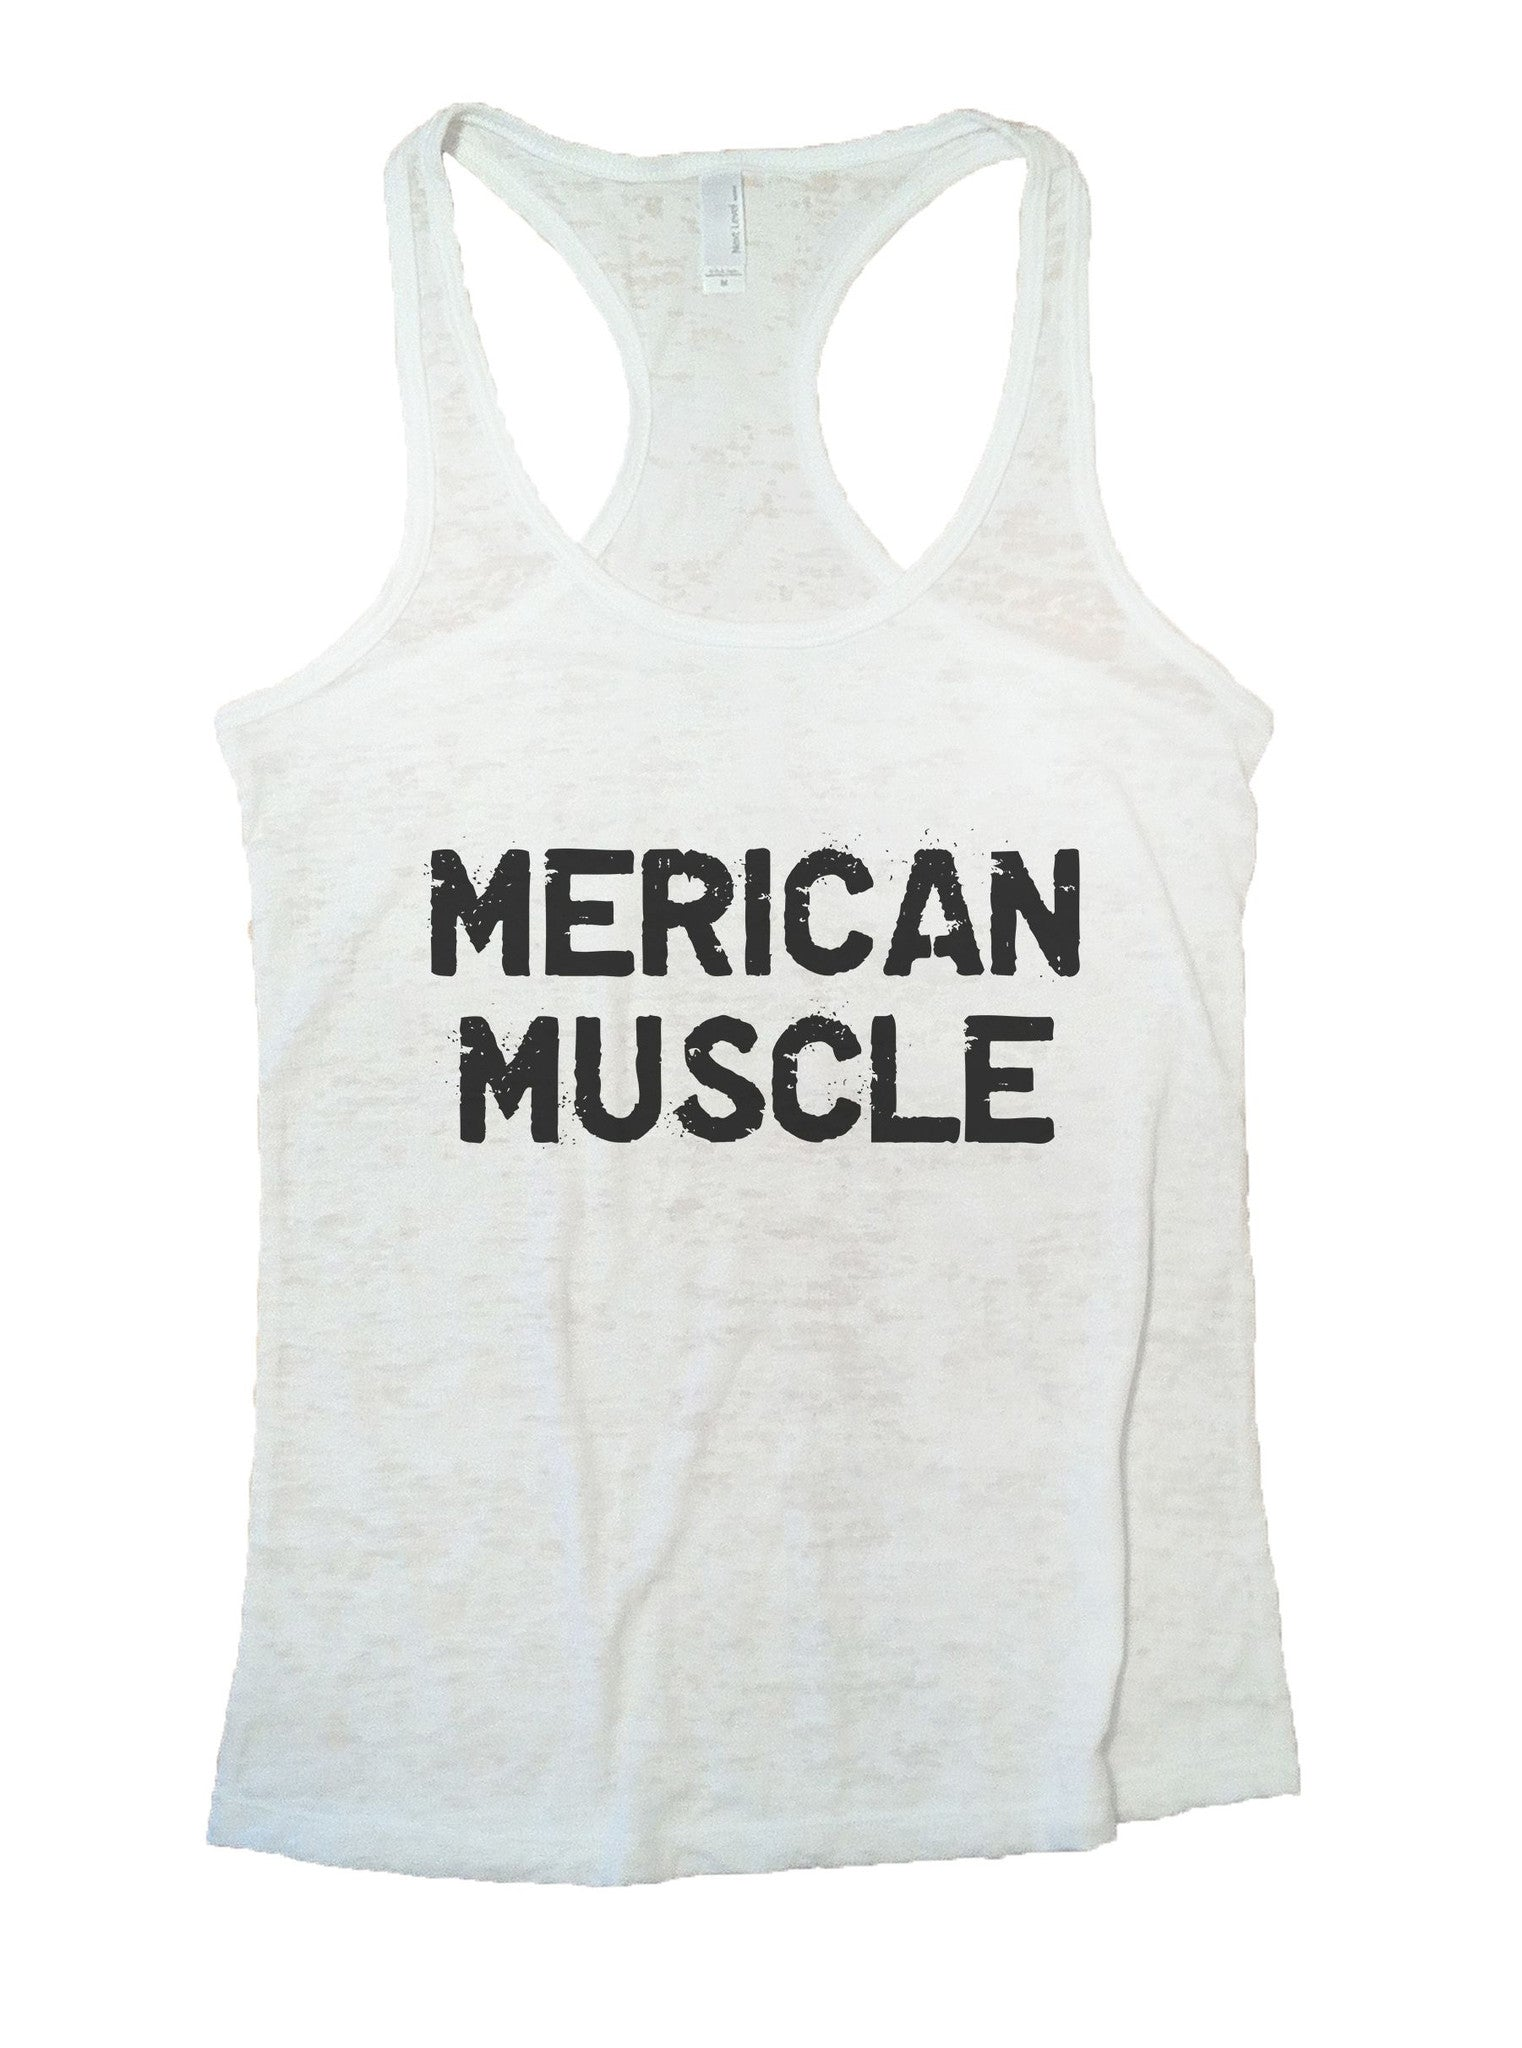 Merican Muscle Burnout Tank Top By BurnoutTankTops.com - 1022 - Funny Shirts Tank Tops Burnouts and Triblends  - 6